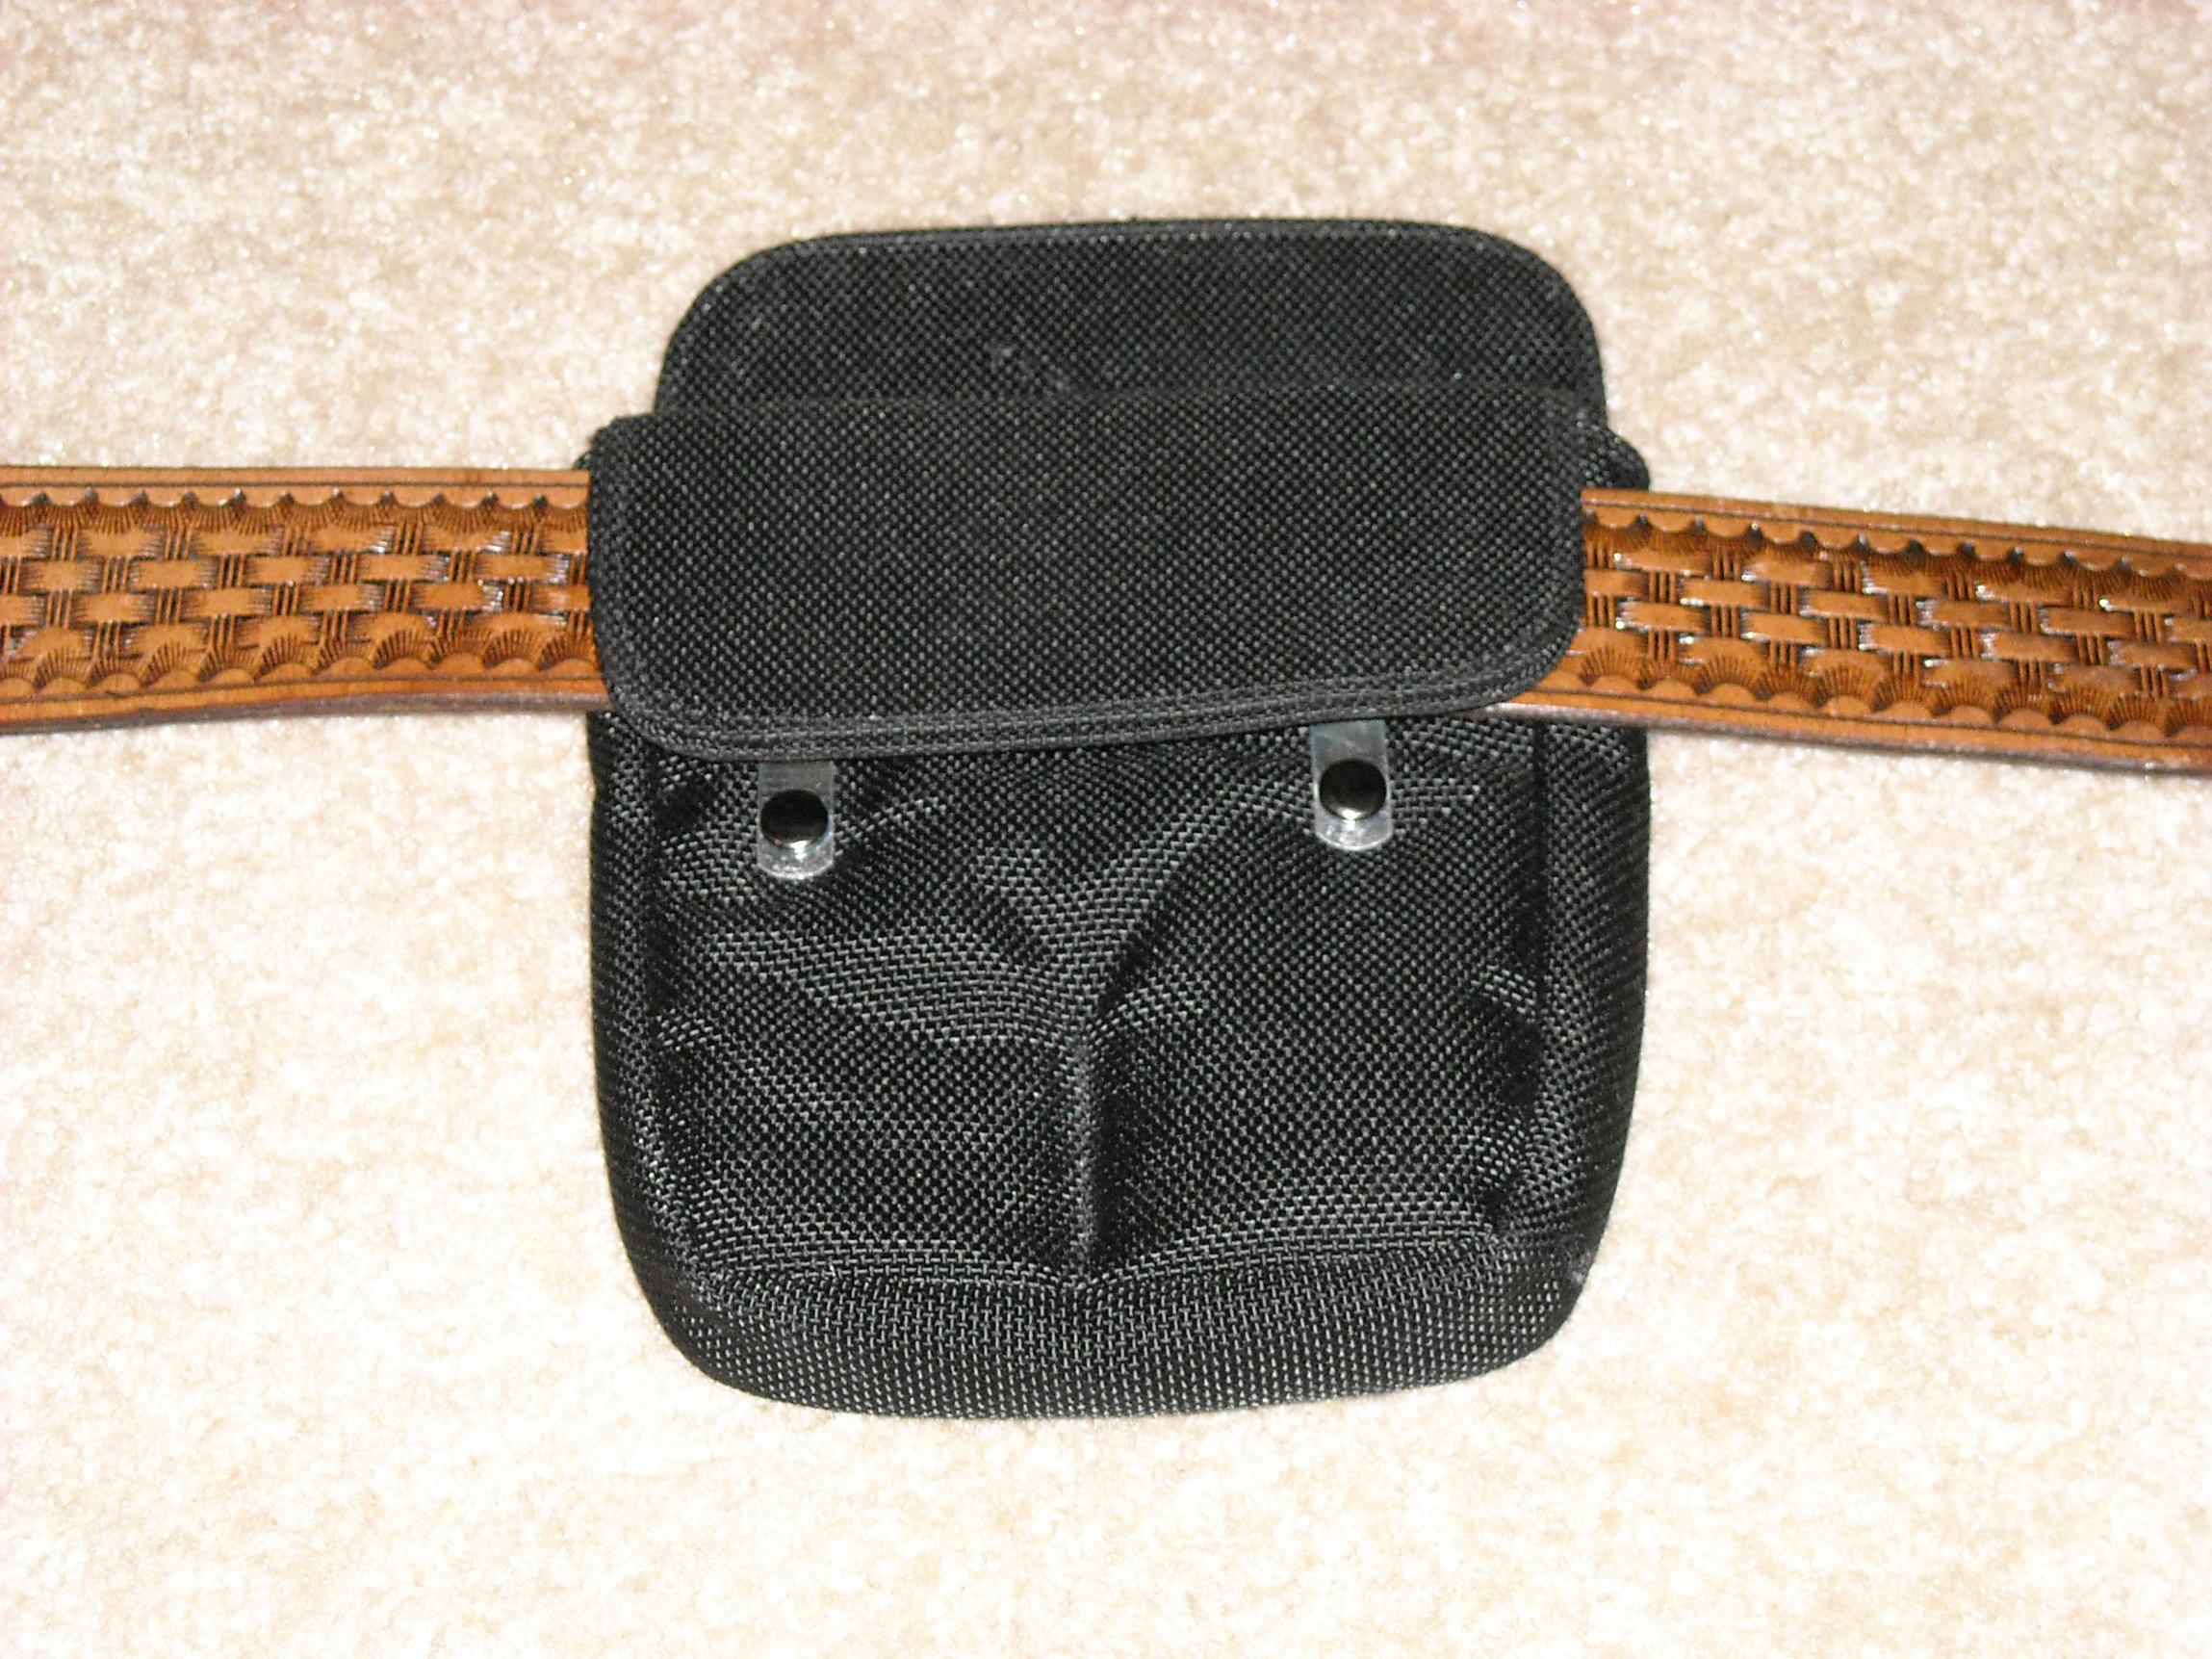 Handy Unusual Holster-square-holster-001.jpg